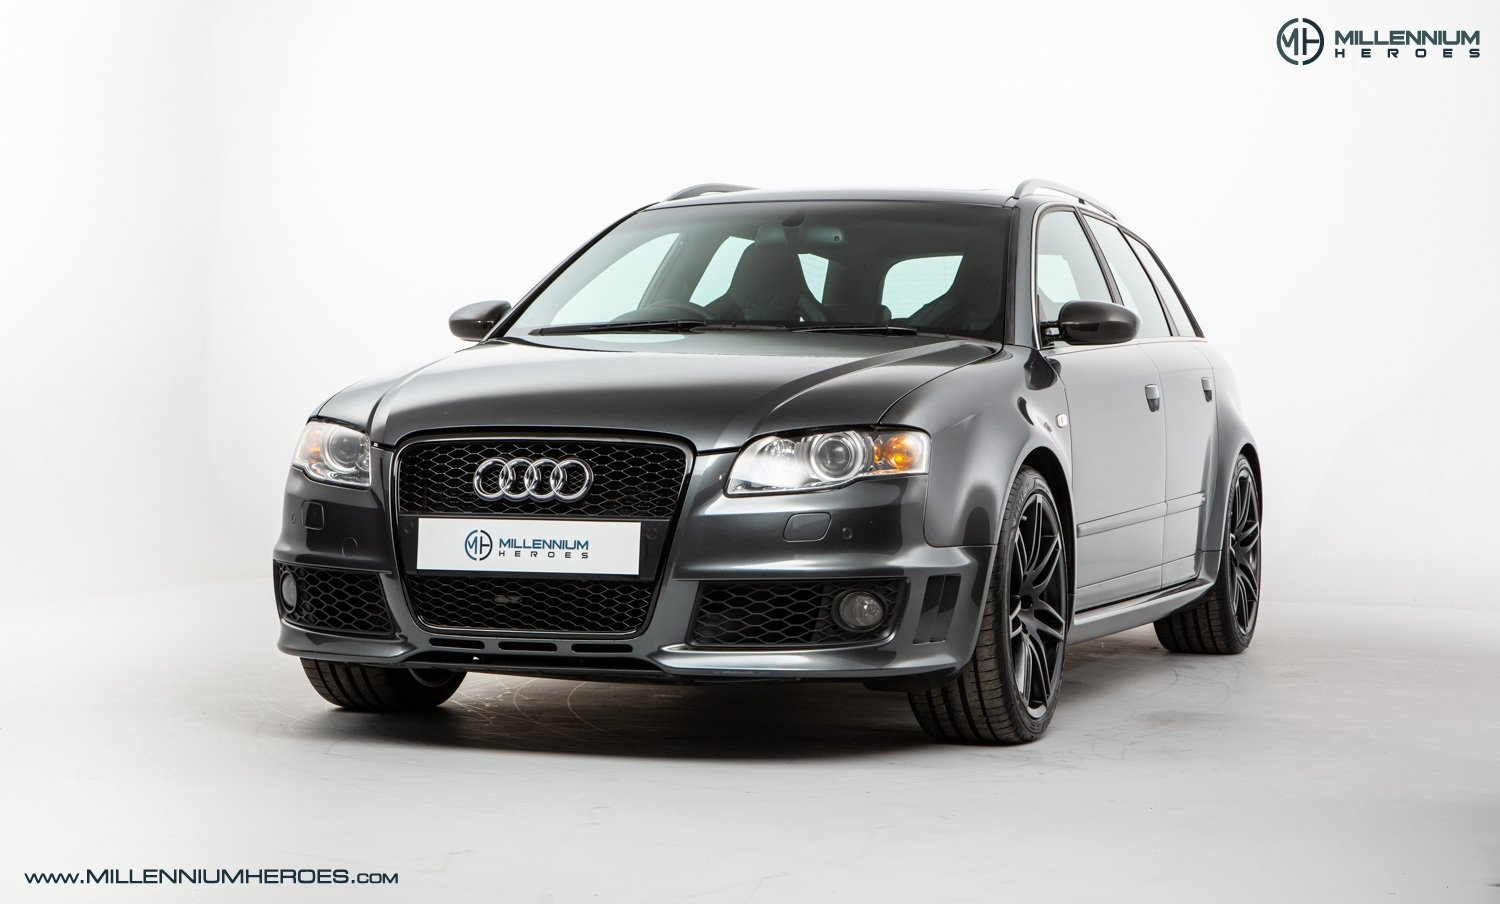 2006 AUDI B7 RS4 AVANT  SOLD (picture 1 of 20)